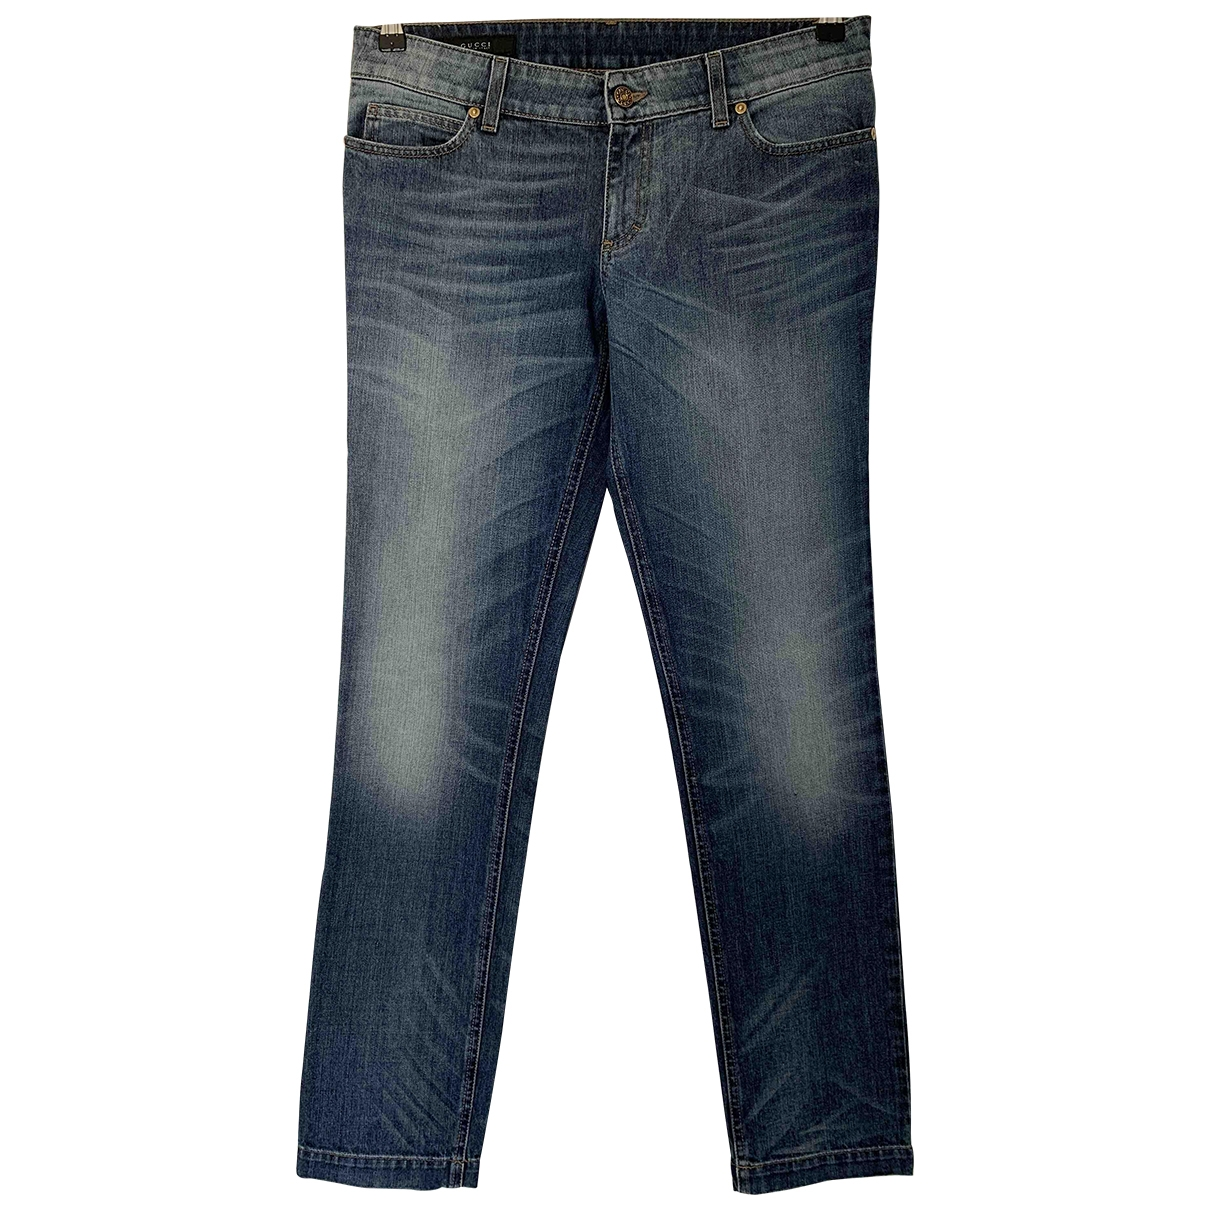 Gucci \N Blue Cotton - elasthane Jeans for Women 29 US